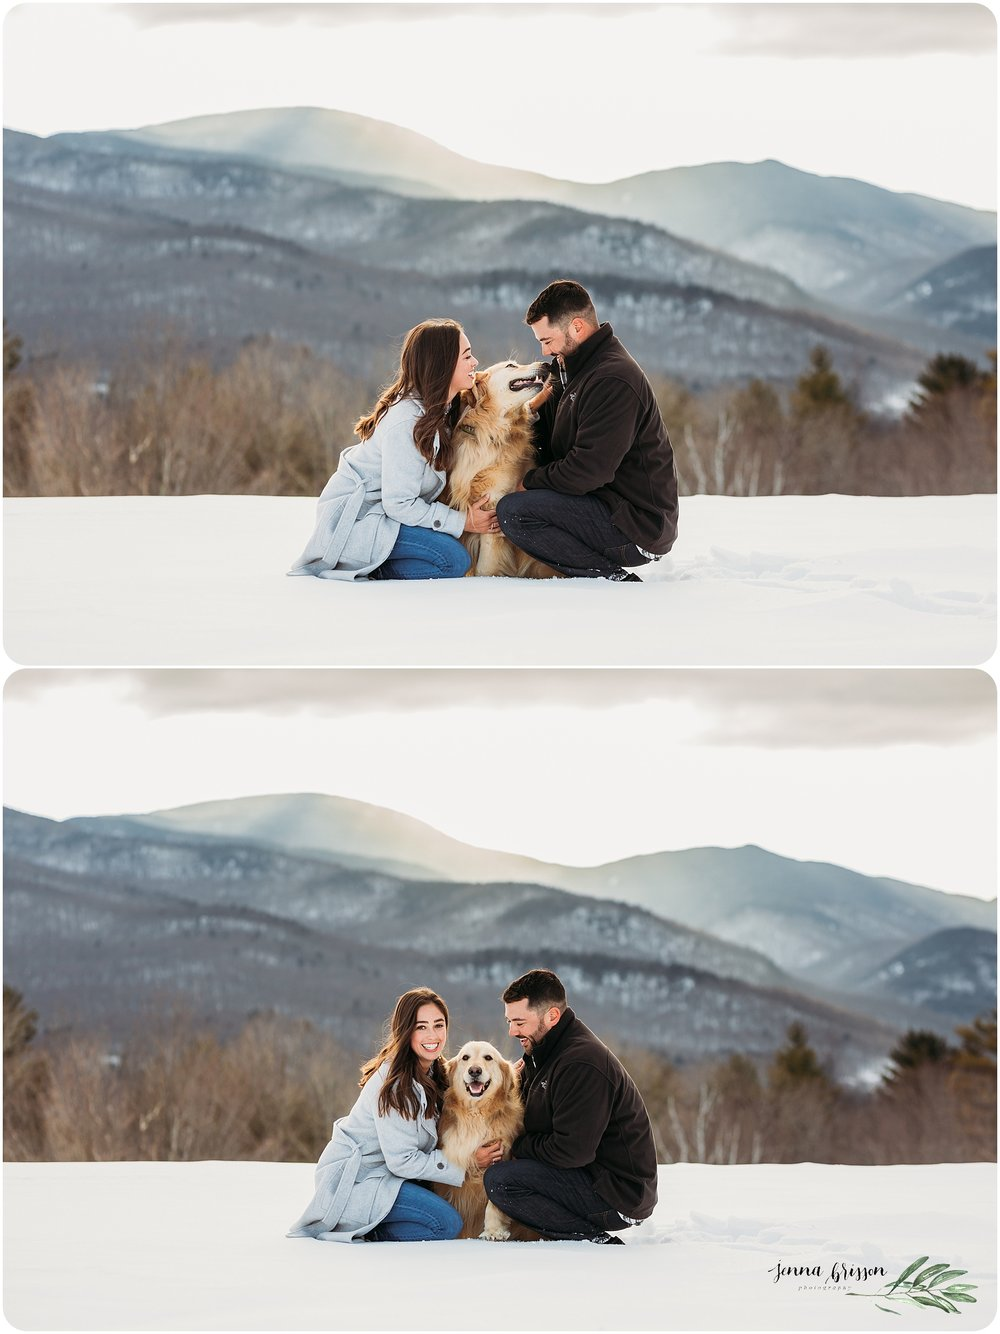 Family Photography Session with Dog Vermont Jenna Brisson Photography